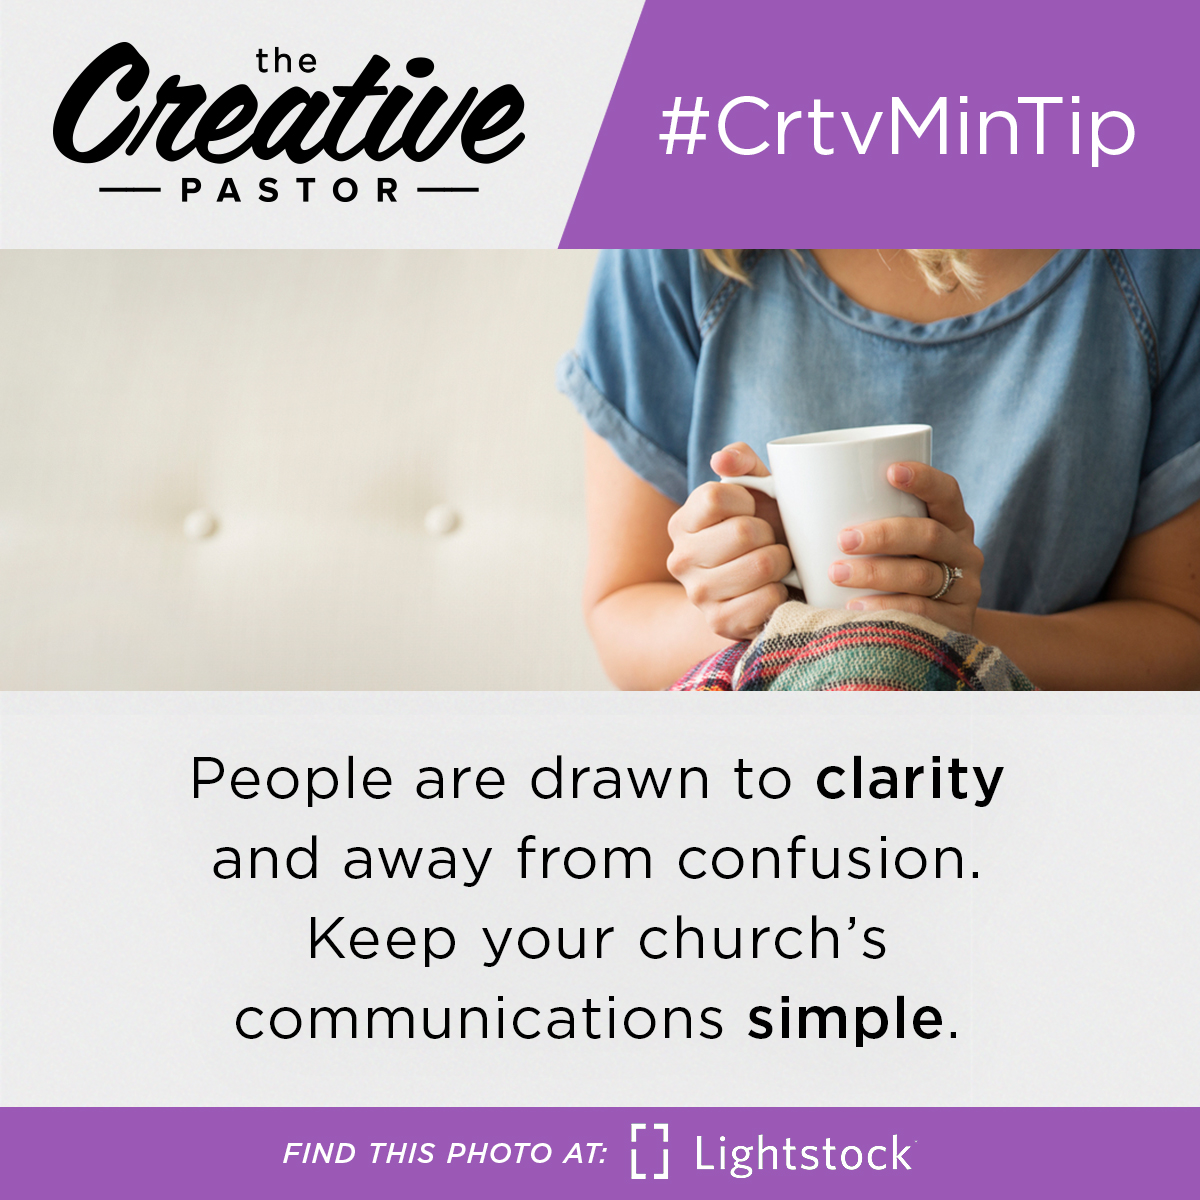 #CrtvMinTip: People are drawn to clarity and away from confusion. Keep your church's communications simple.